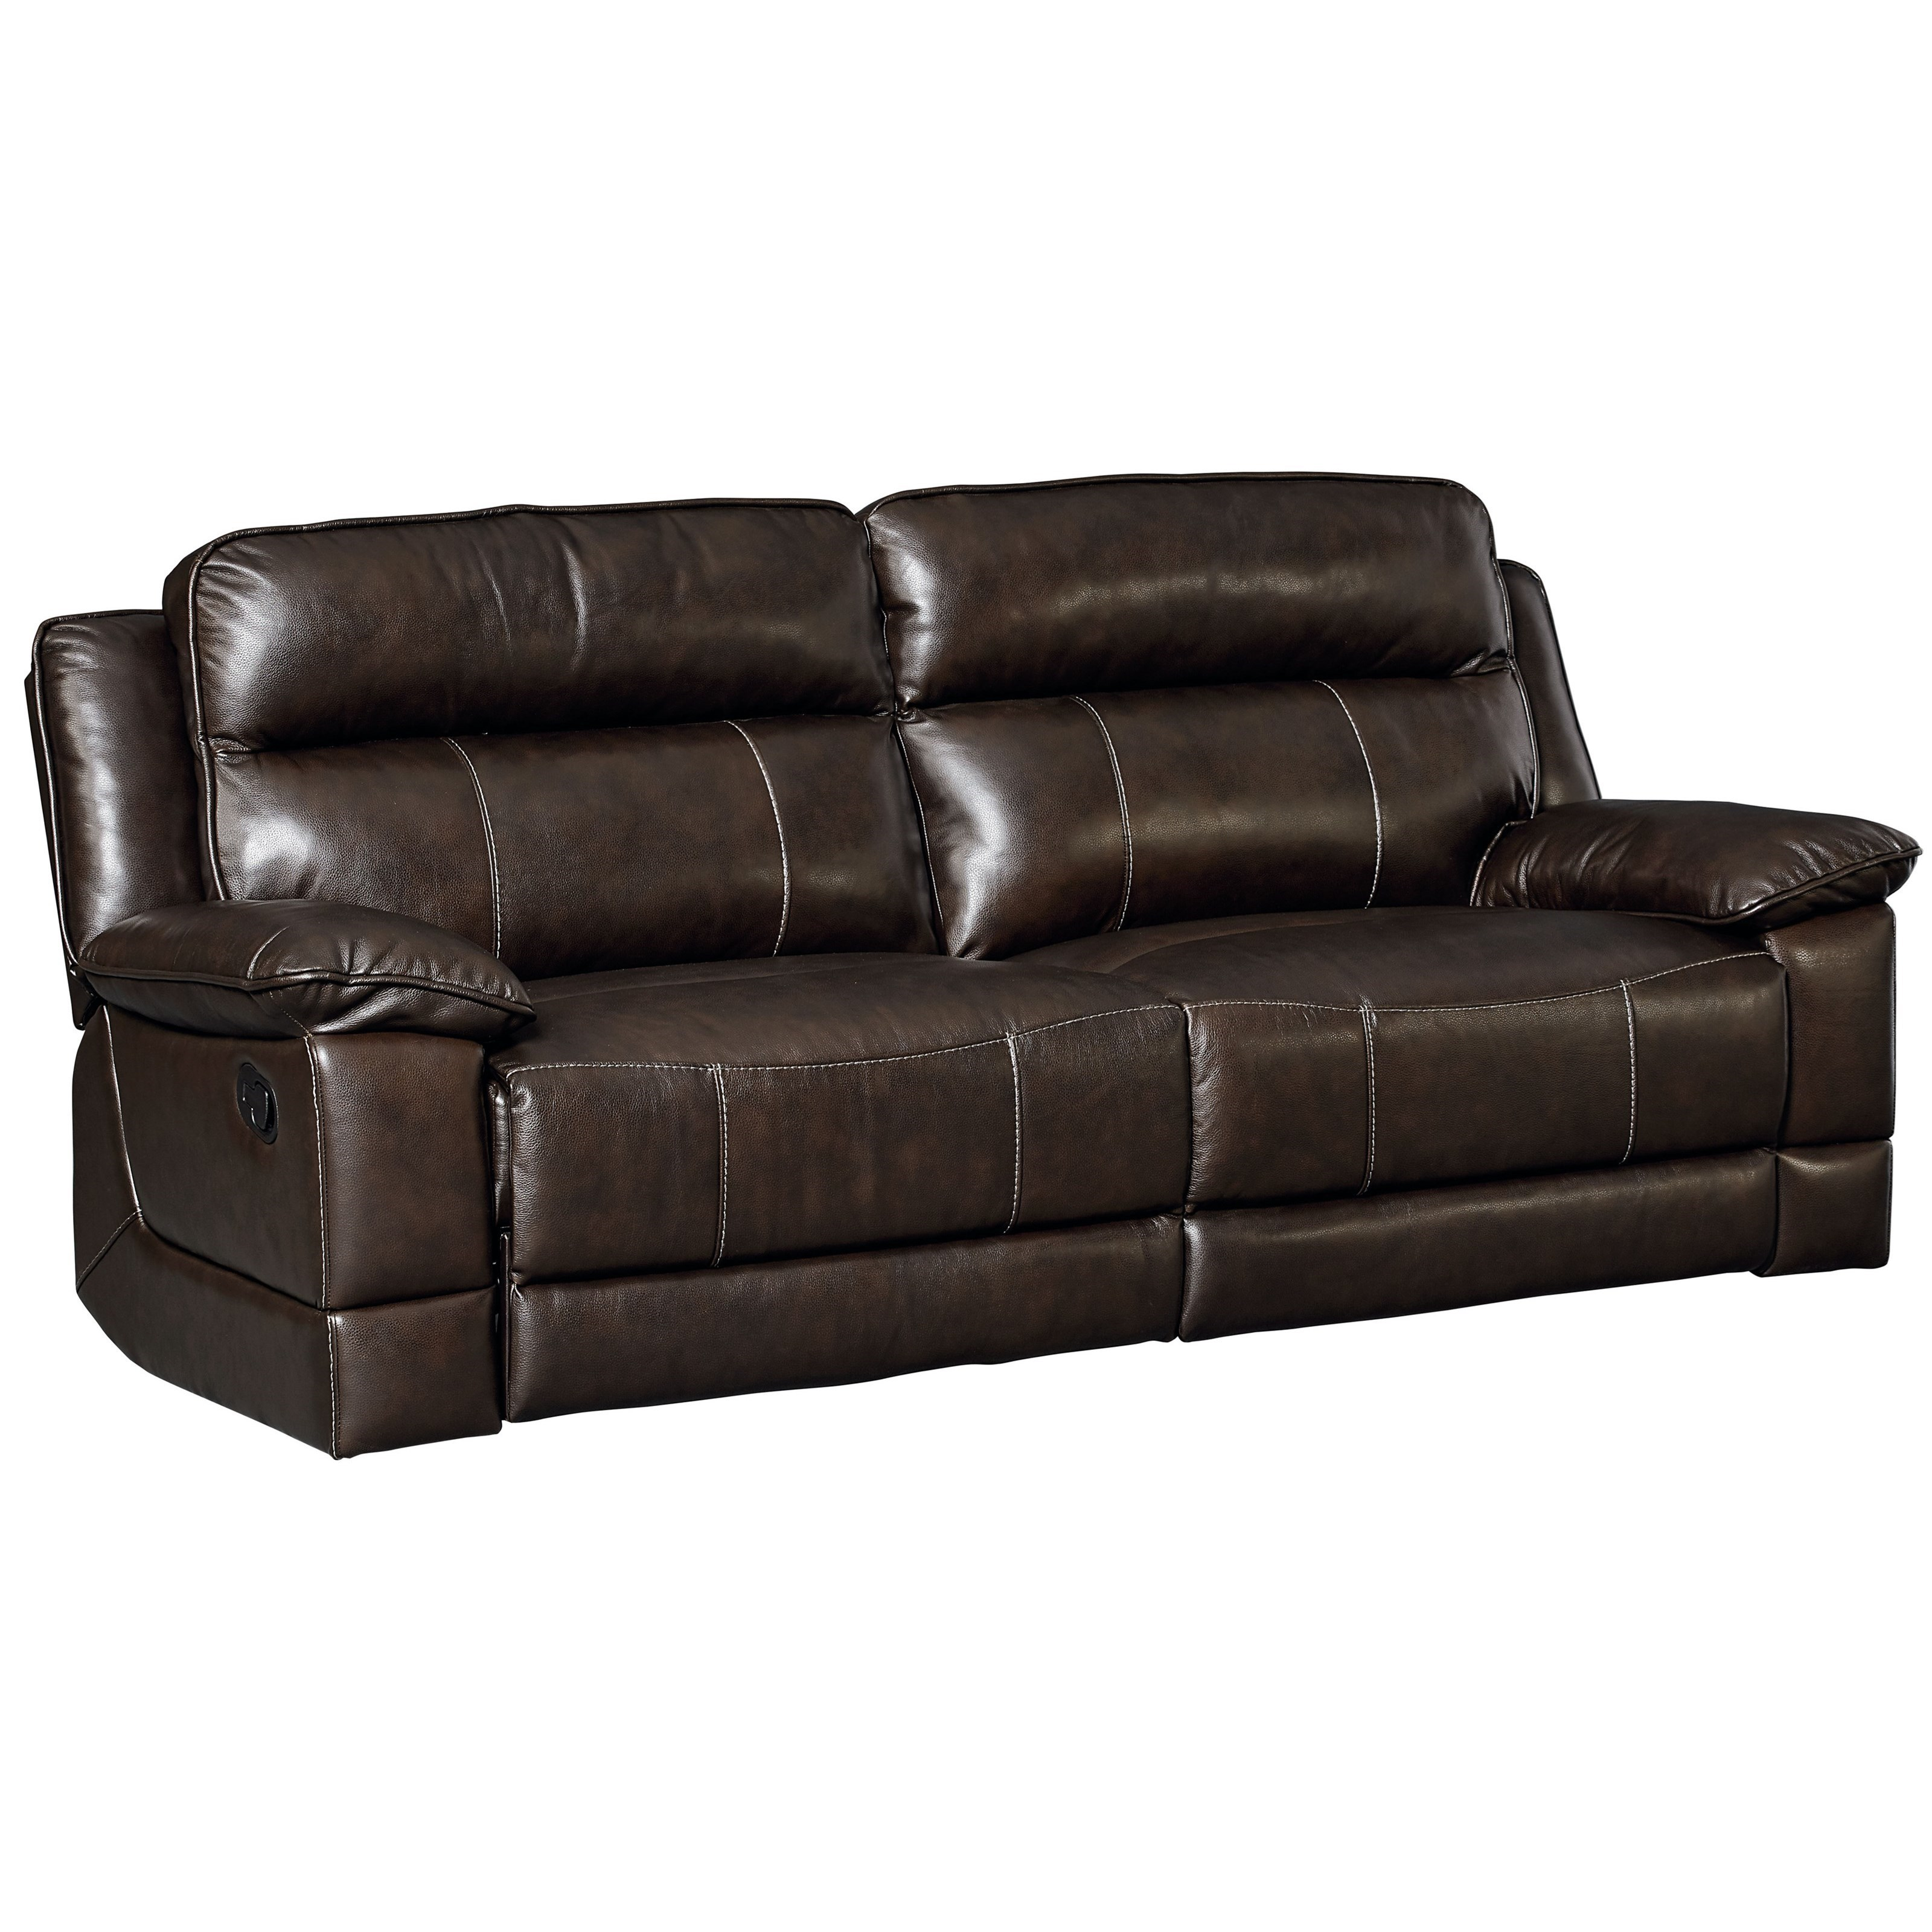 Standard Furniture Sequoia Motion Sofa With Pillow Arms